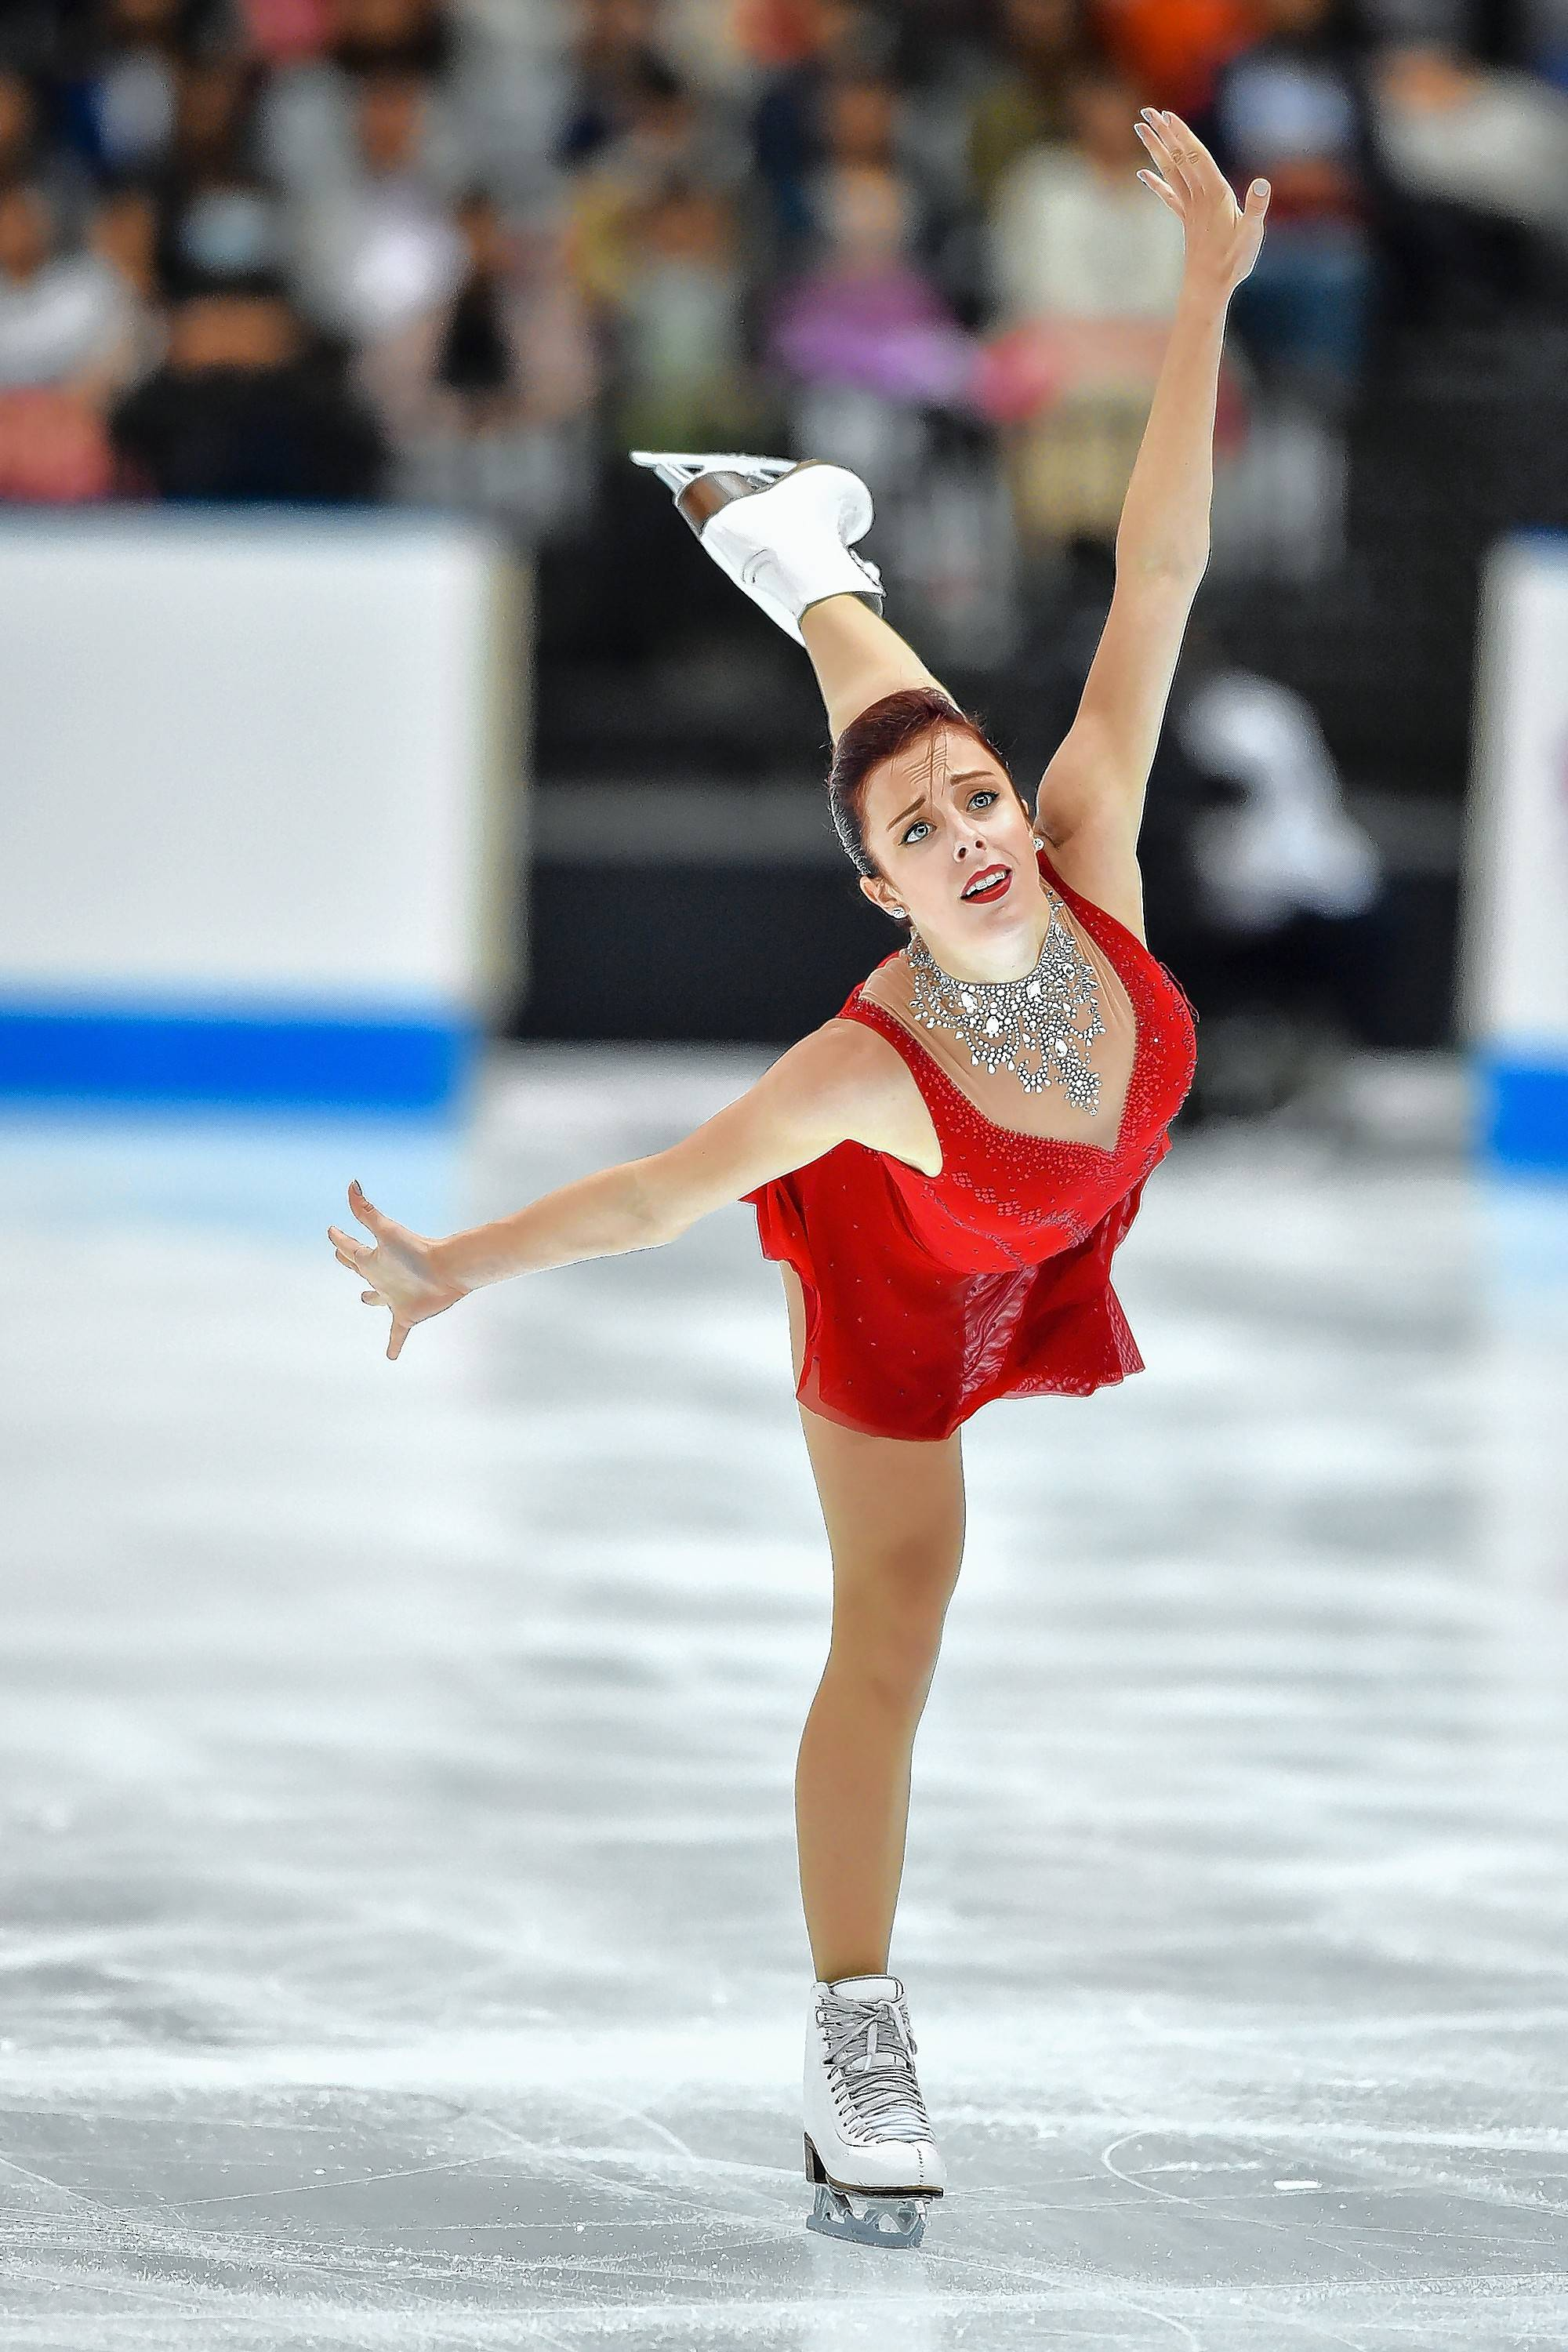 Three-time U.S. champion Ashley Wagner will be among the competitors this weekend at the Sears Centre Arena in Hoffman Estates for the 2016 Progressive Skate America.